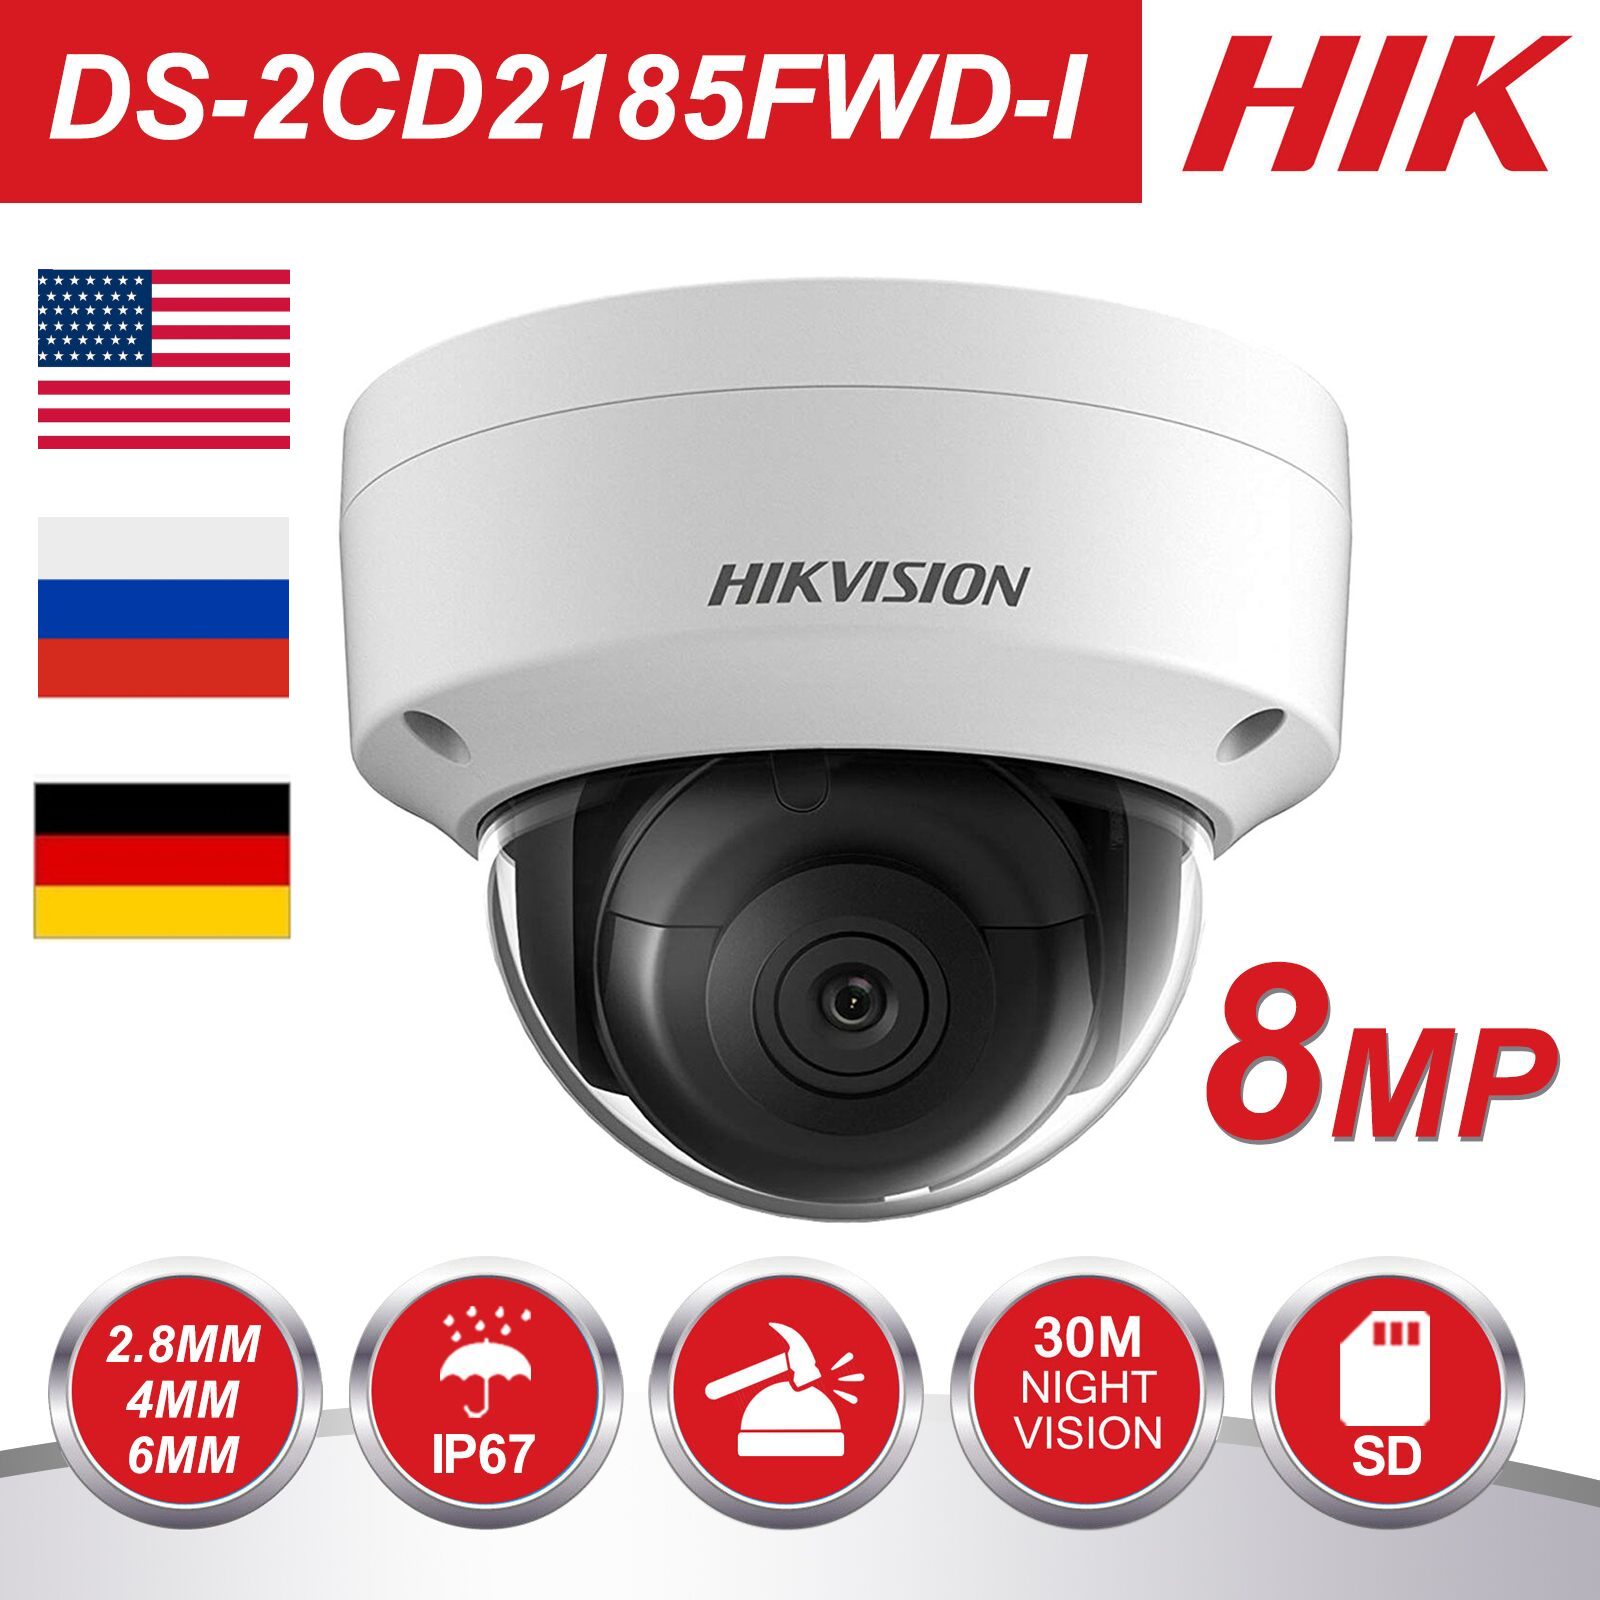 Hikvision 8MP POE IP Camera DS-2CD2185FWD-I Outdoor 4K Network Dome Security CCTV Camera SD Card 30m IR H.265+